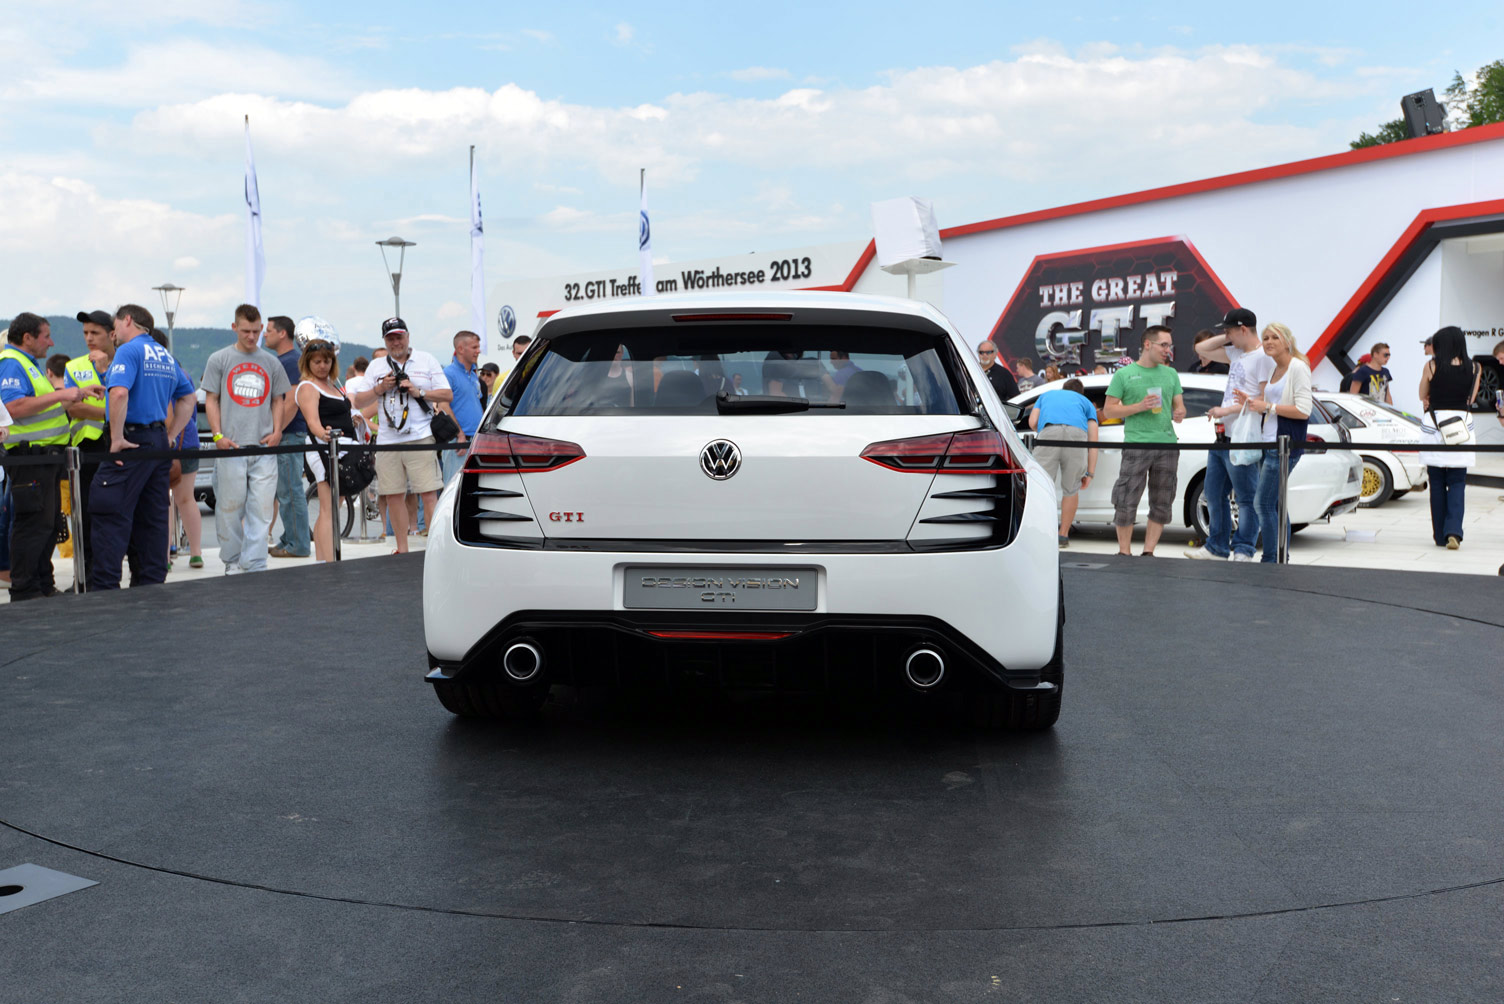 volkswagen-design-vision-gti-worthersee-064